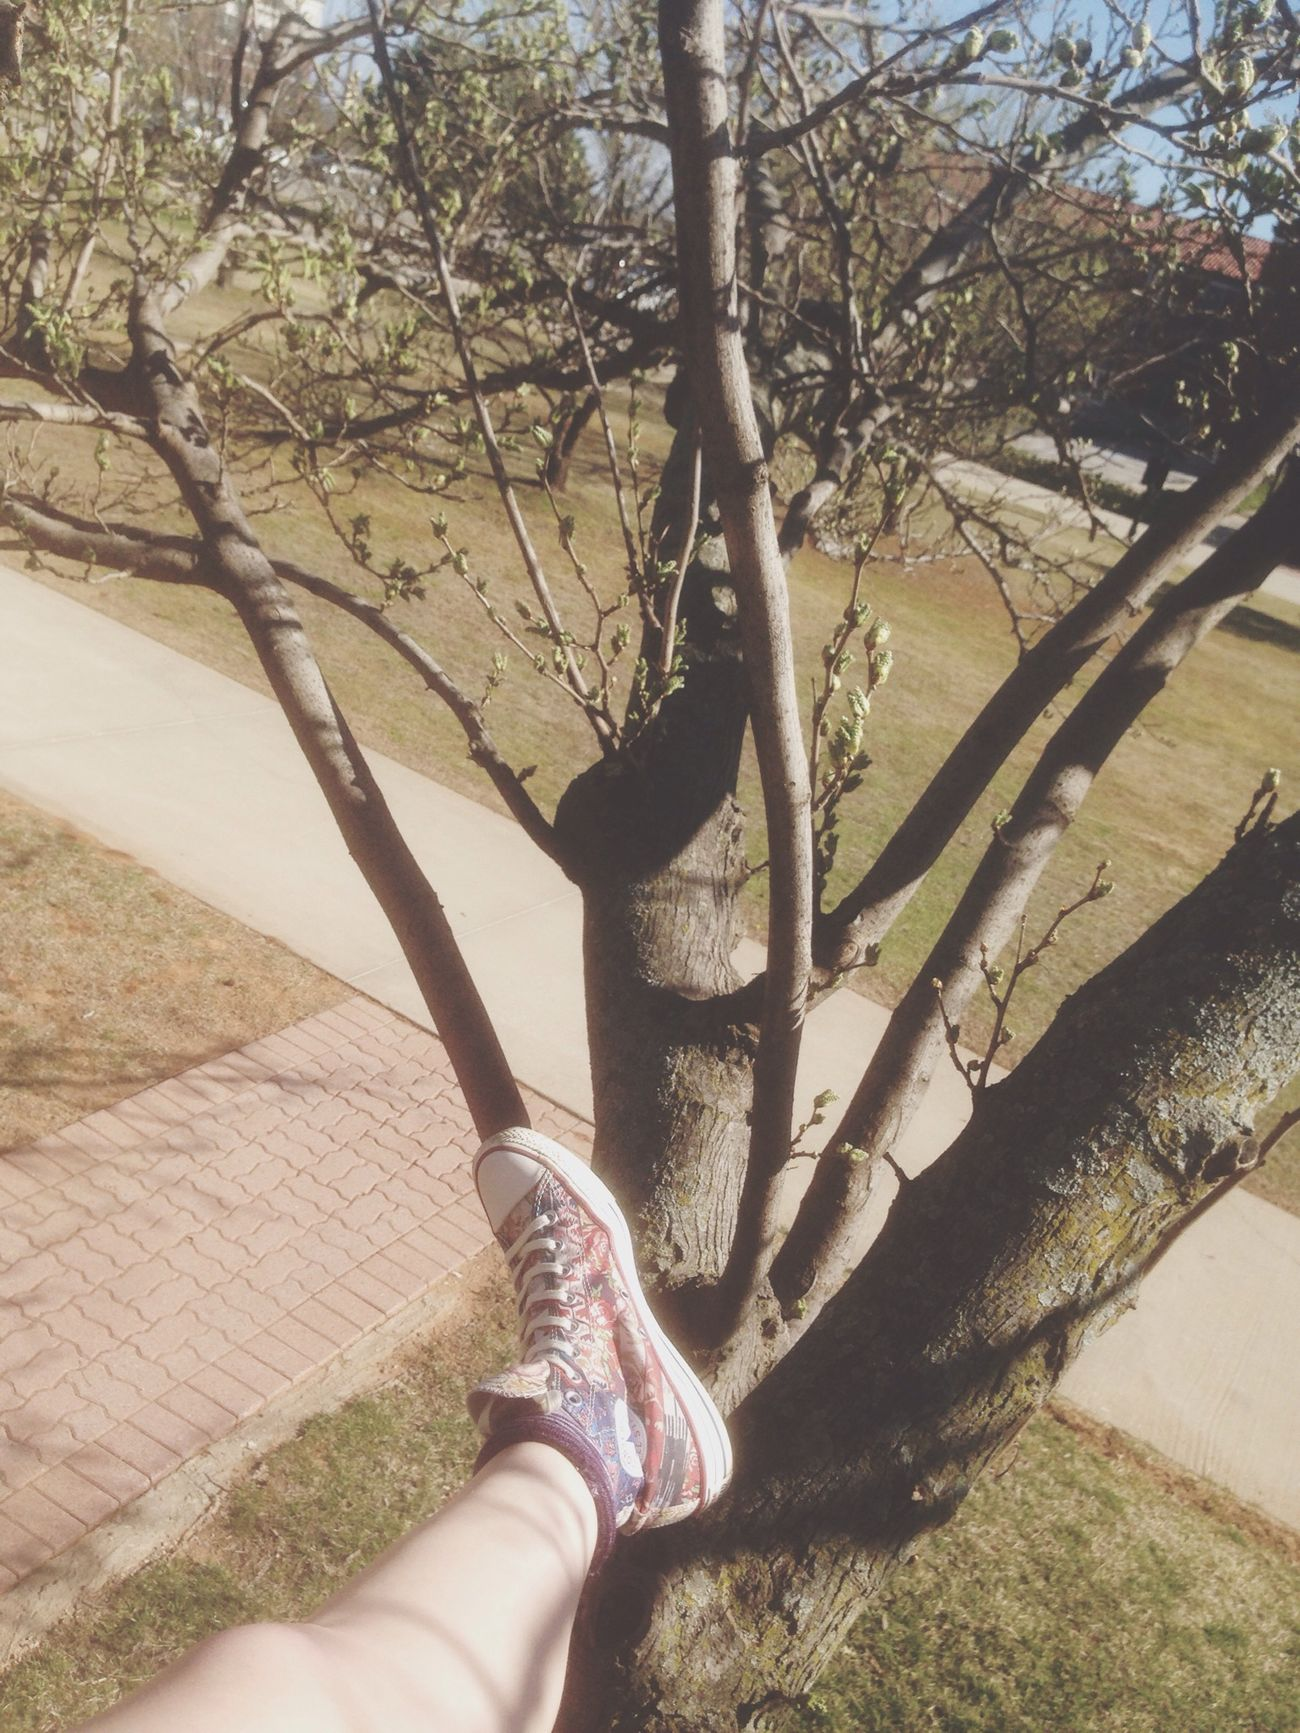 climbed a tree yay Livefromabranch Nature Trees Branch Taking Photos